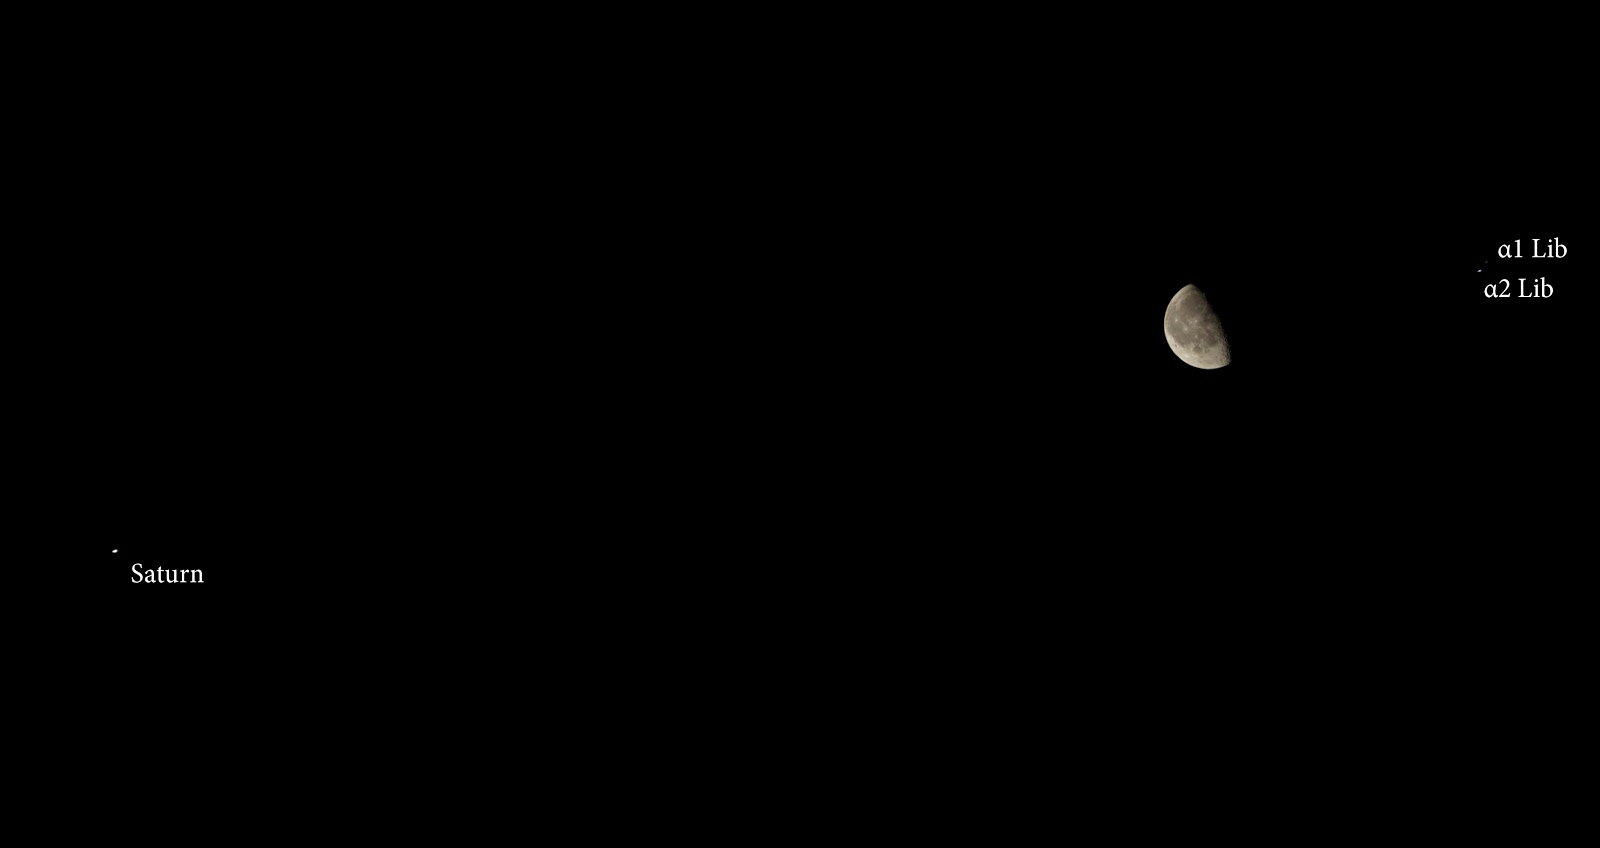 Moon with Saturn and Alpha Librae (α Lib)